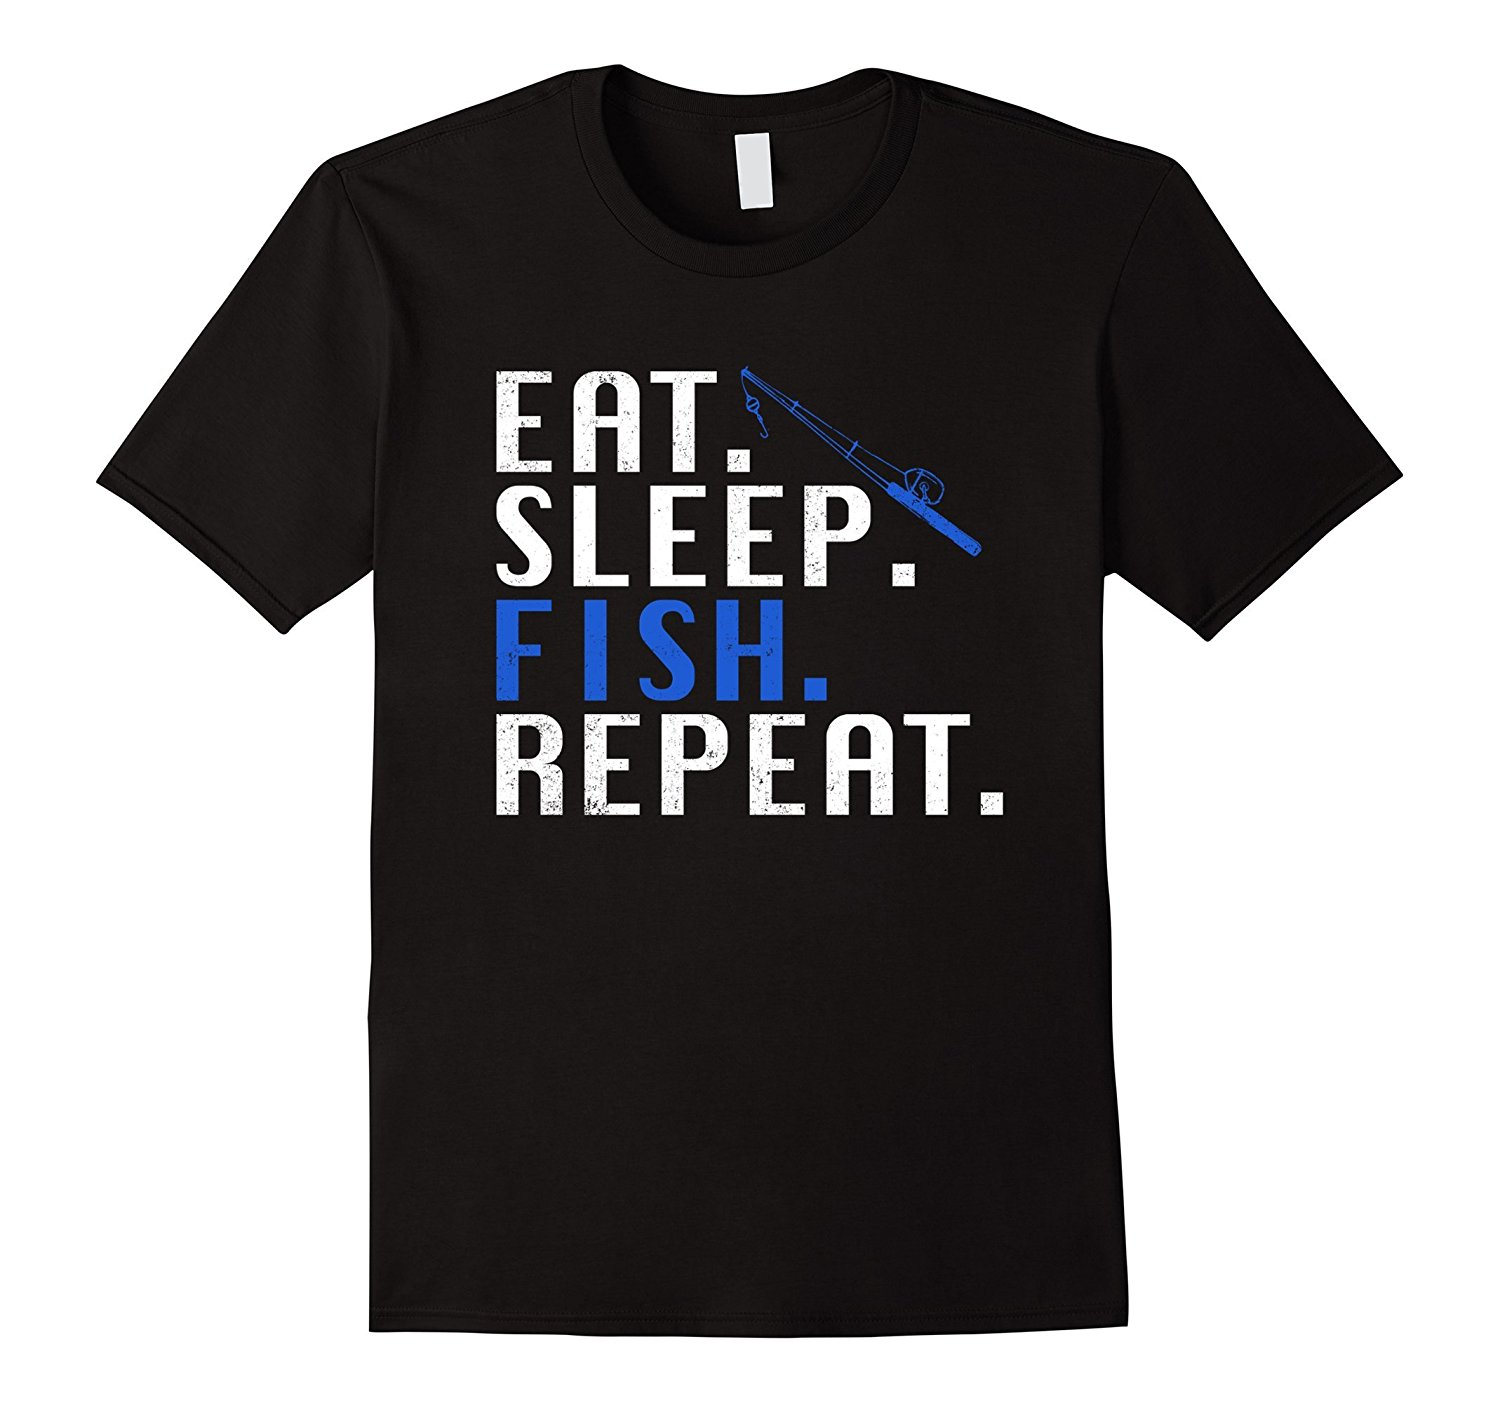 Mens Eat. Sleep. Fish. Repeat. Funny T Shirt Hot Selling 100 % Cotton Tee Shirts Top Tee for Male/Boy Tee Shirts